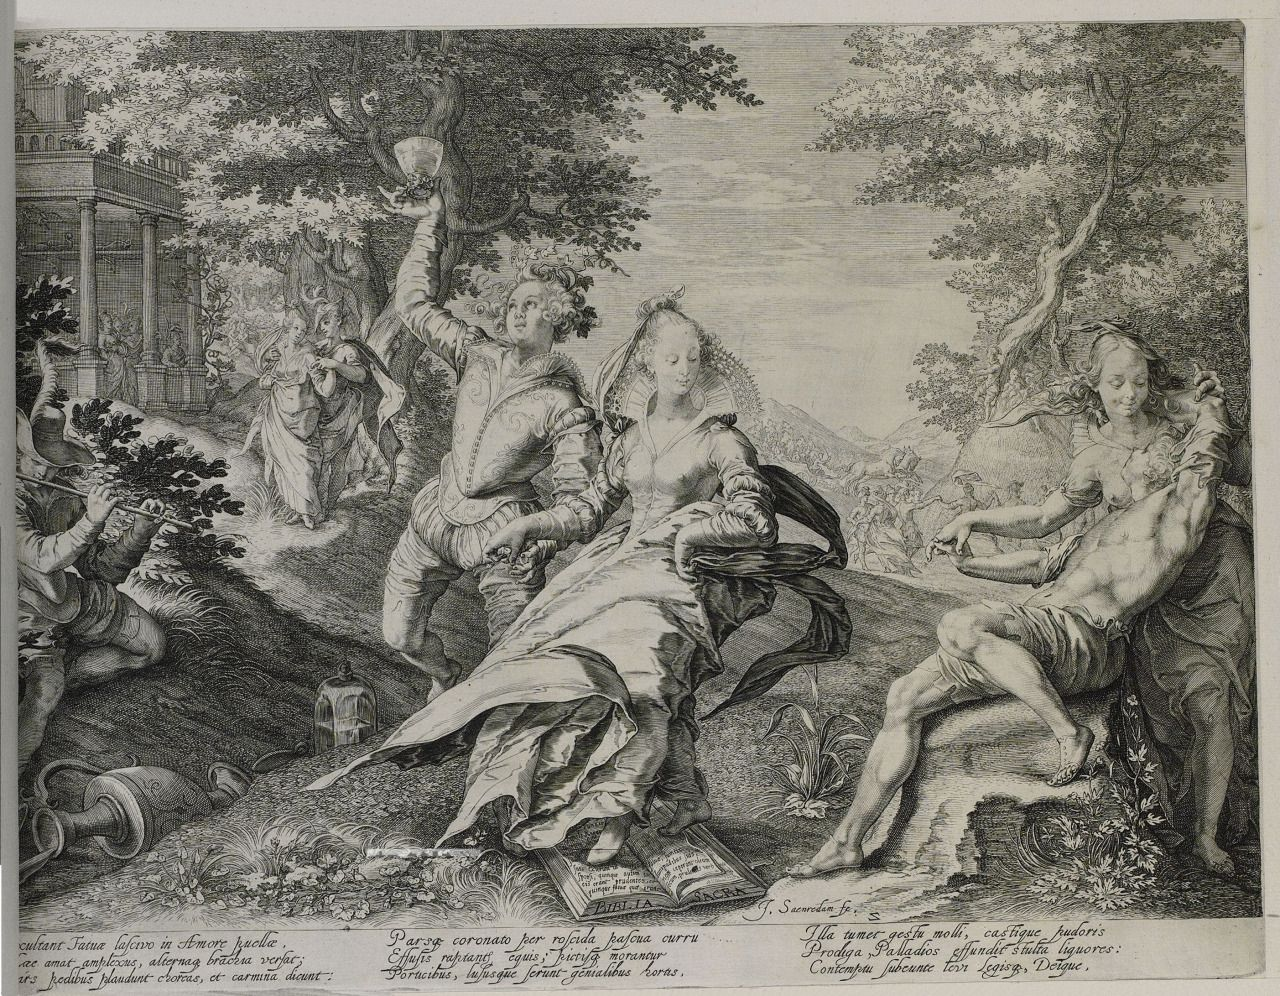 """Parable of the Wise and Foolish Virgins"" by Jan Saenredam, 1601 - 1625"